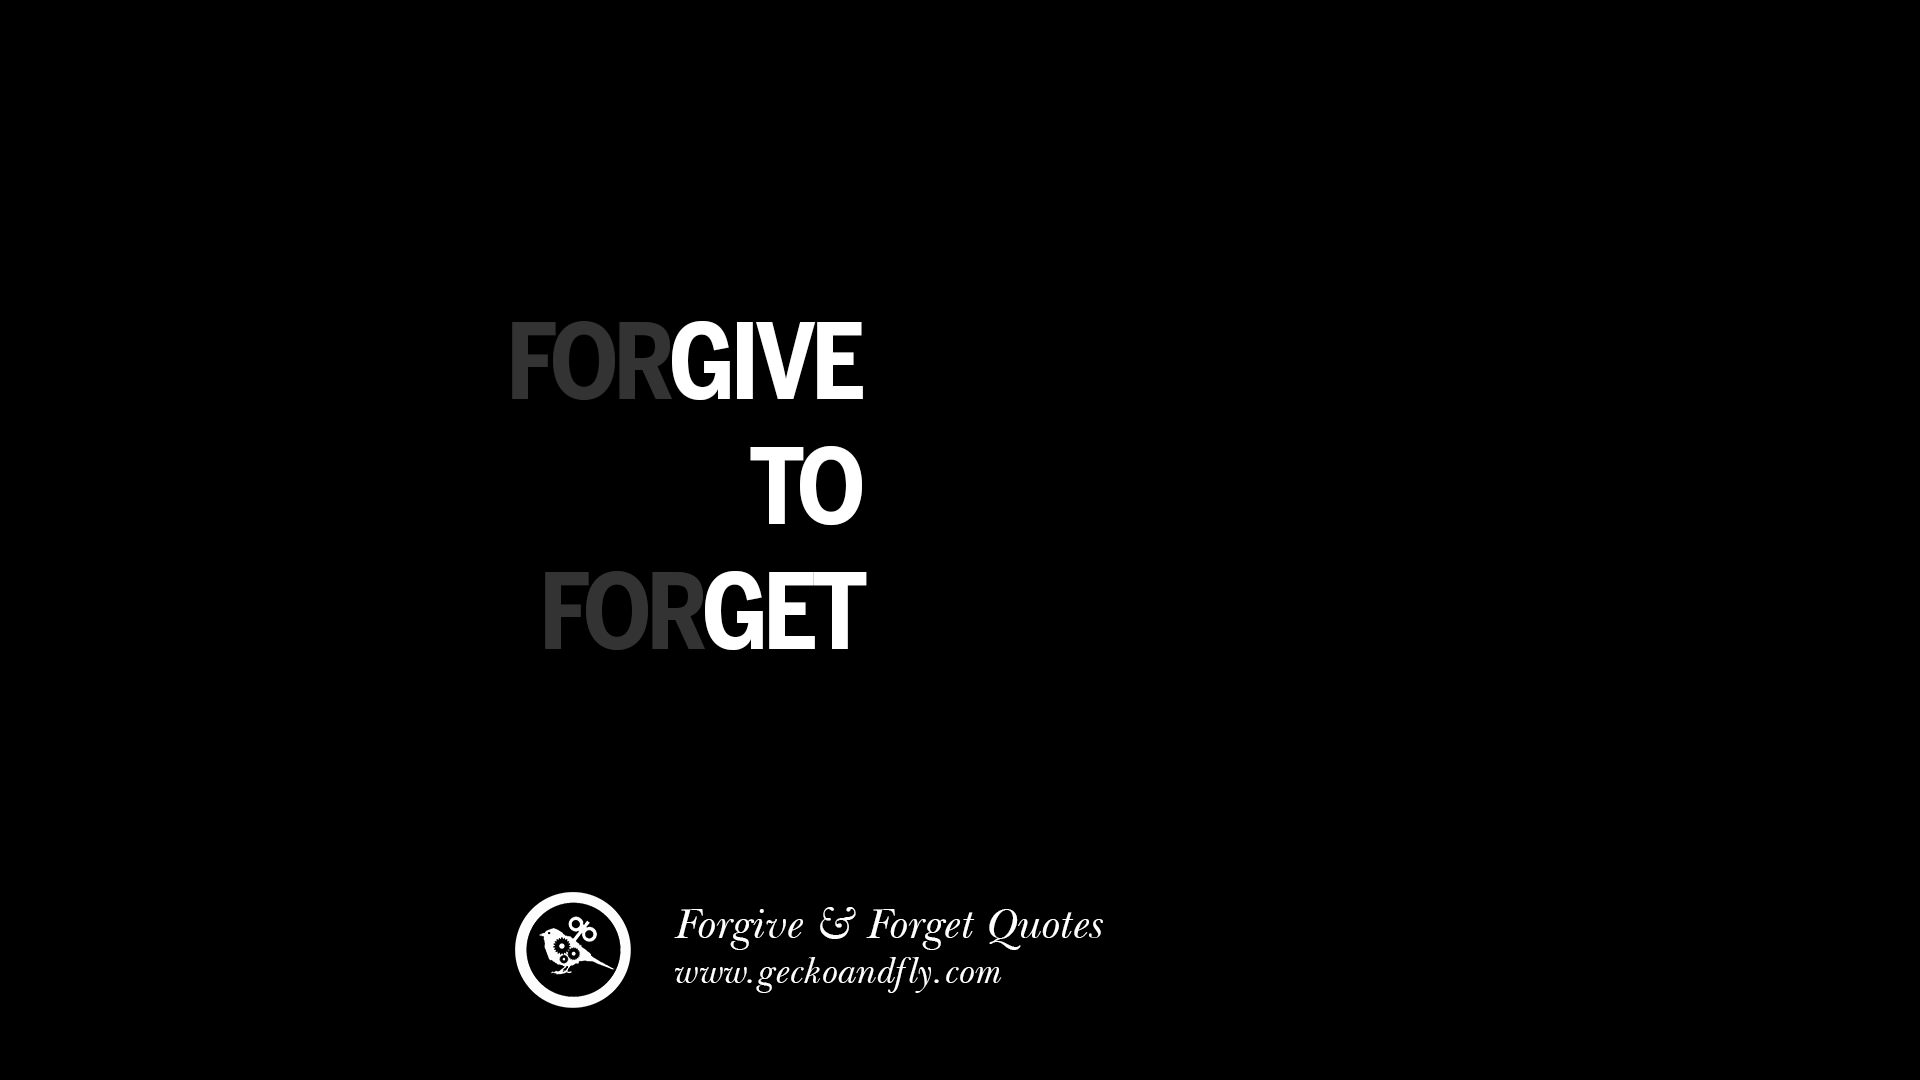 Forgiveness Quotes | 50 Quotes On Forgive And Forget When Someone Hurts You In A Relationship